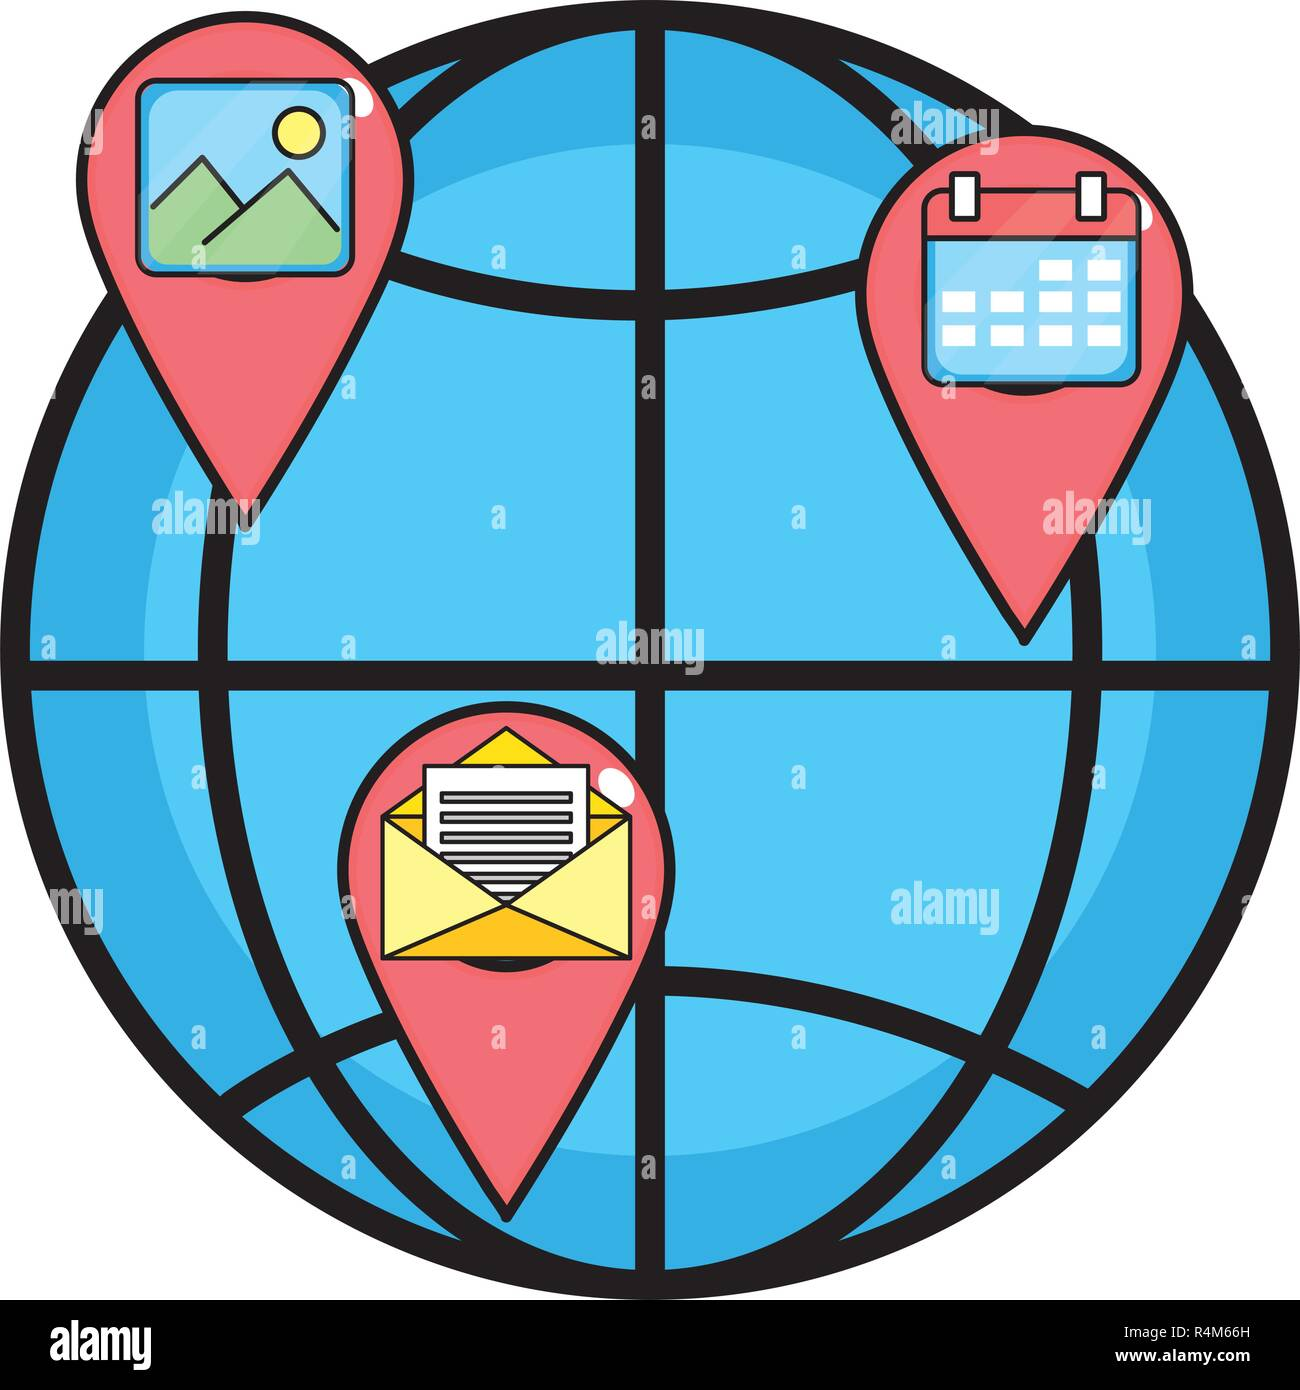 technology web icon and gps locations with email and image with calendar apps cartoon vector illustration graphic design Stock Vector